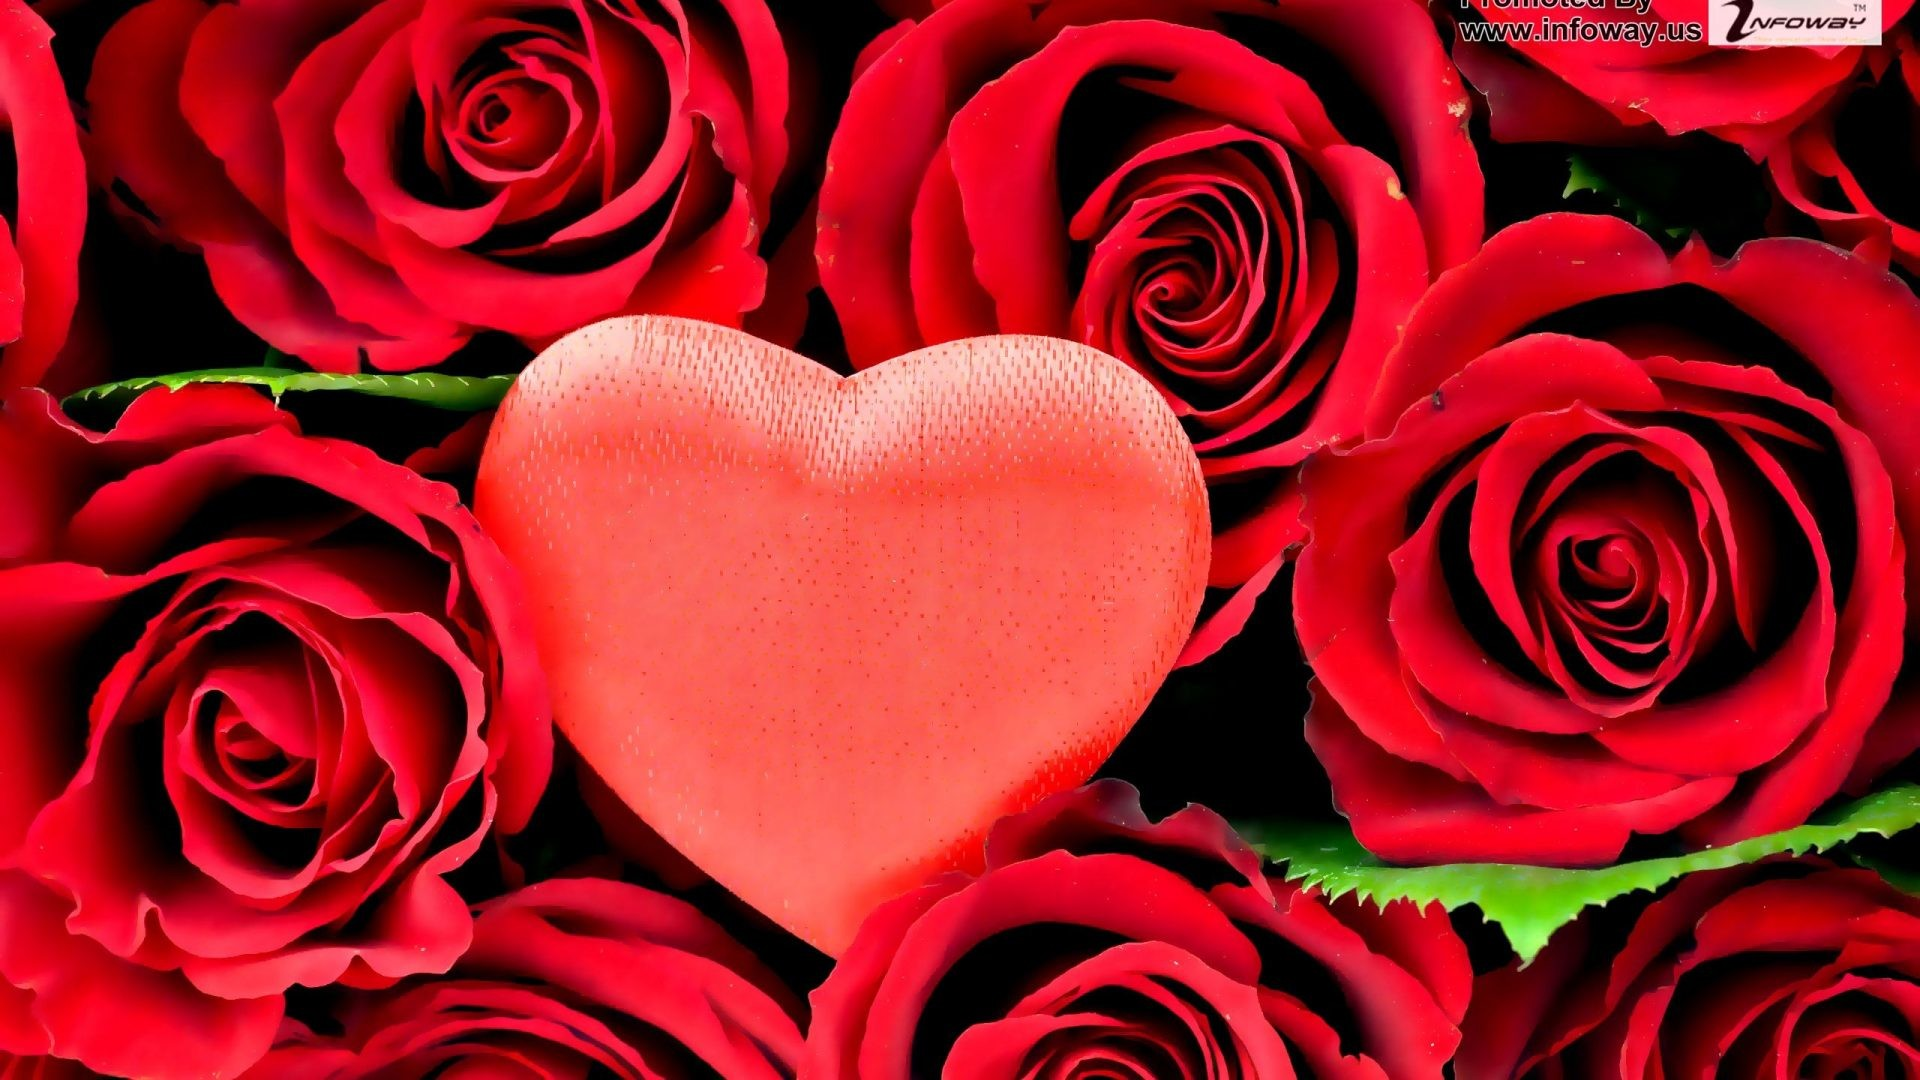 #DD1122 Color – Love Heart Flowers Roses Red Wallpaper Flower Hd 3d for HD  16